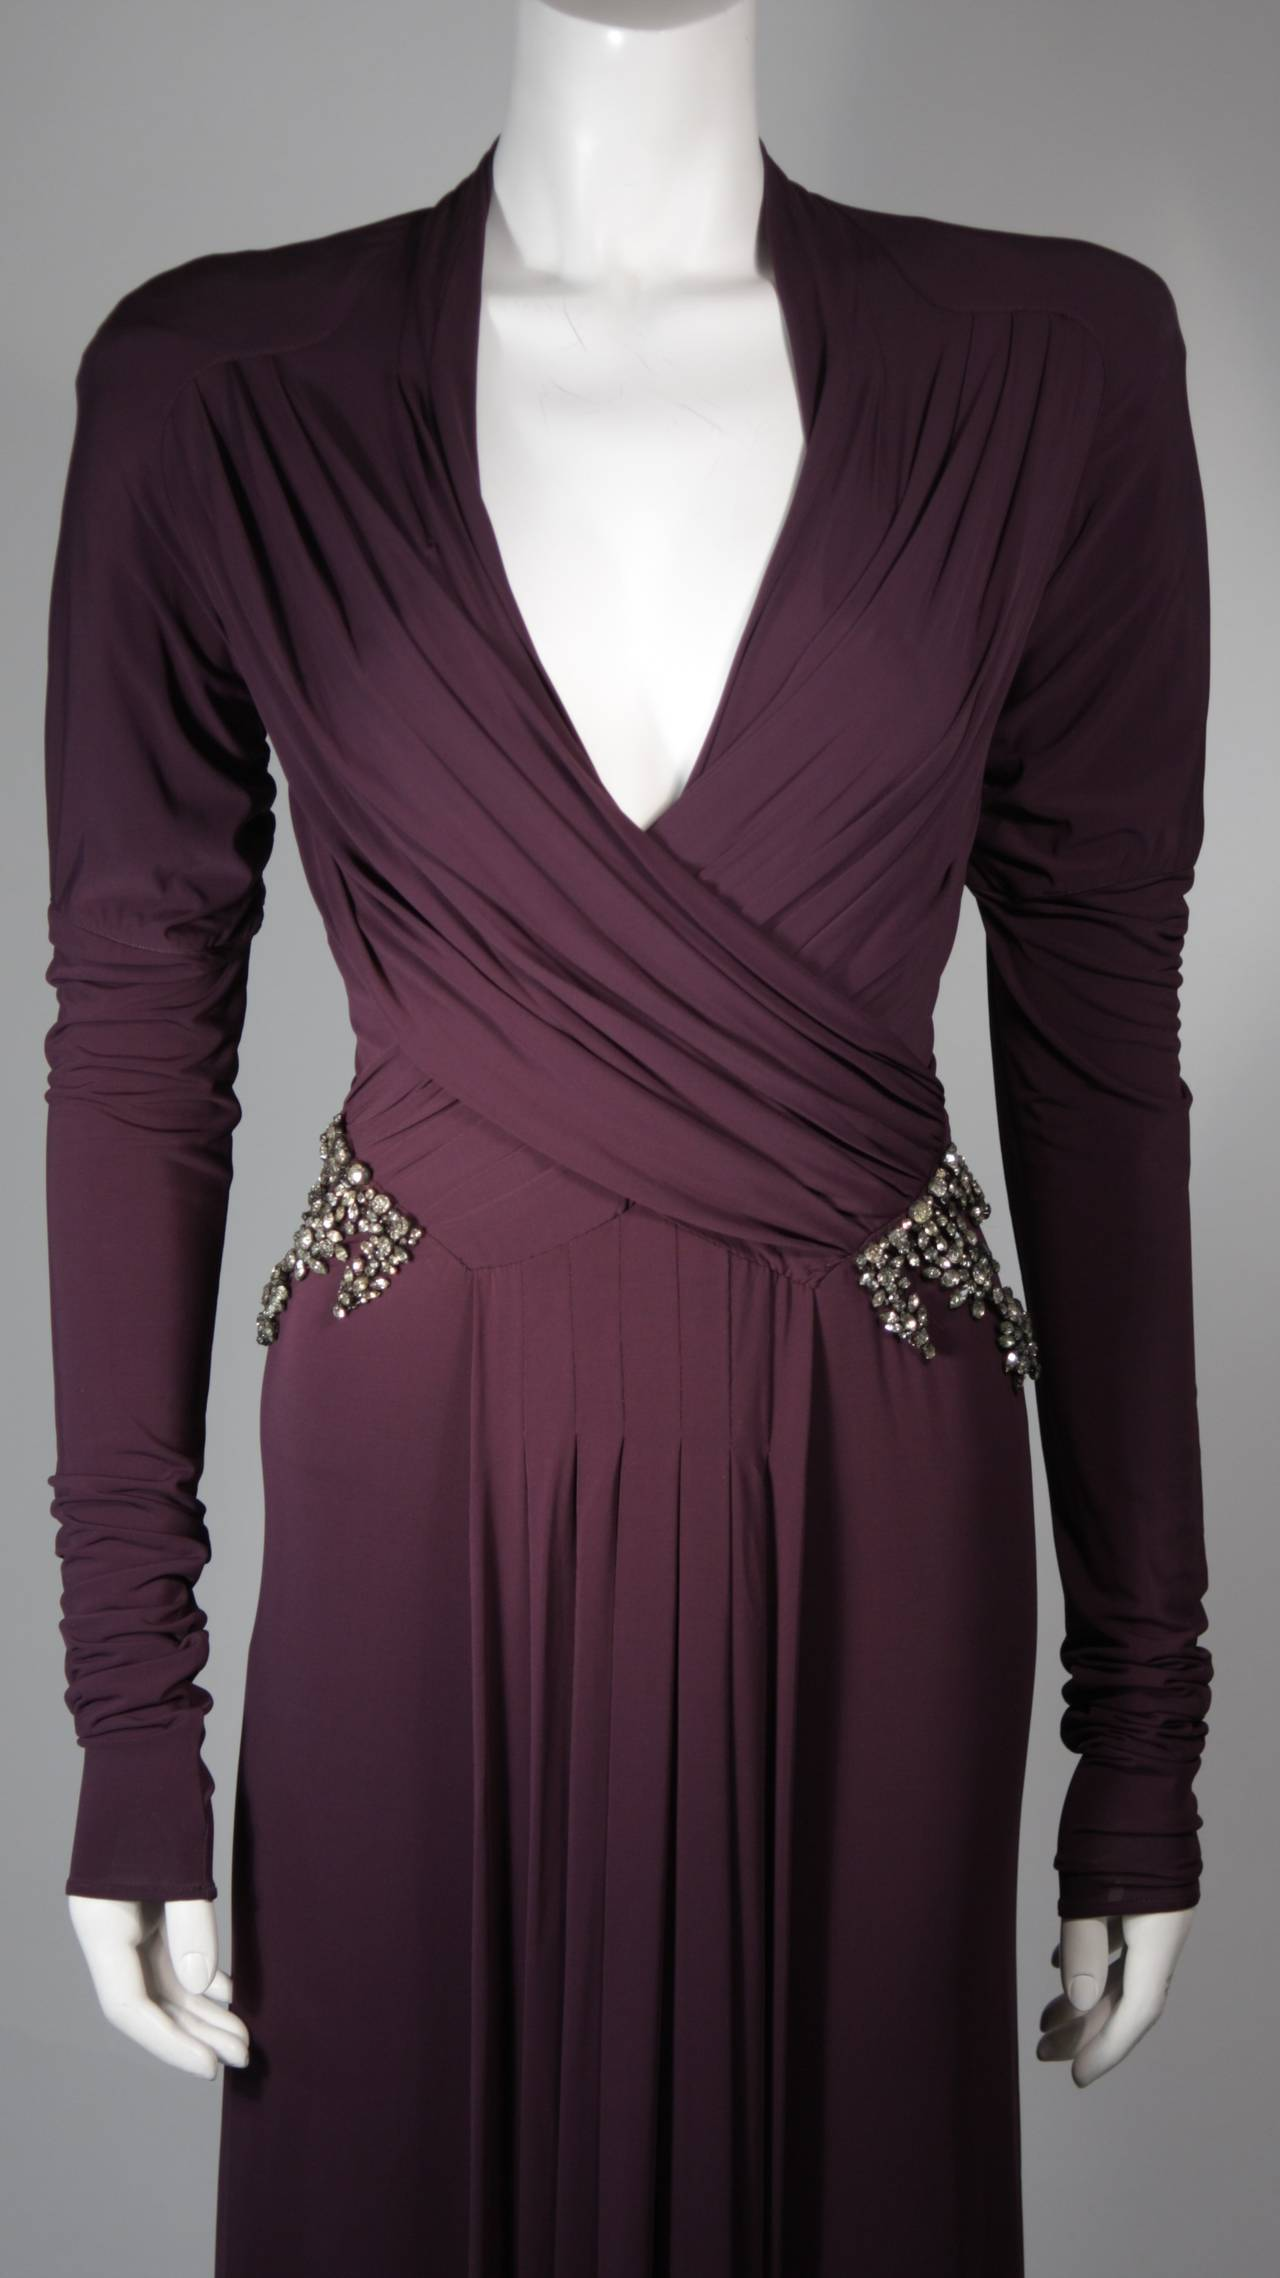 Roberto Cavalli Aubergine Long Sleeve Jersey Gown with Embellishments Size 40 3